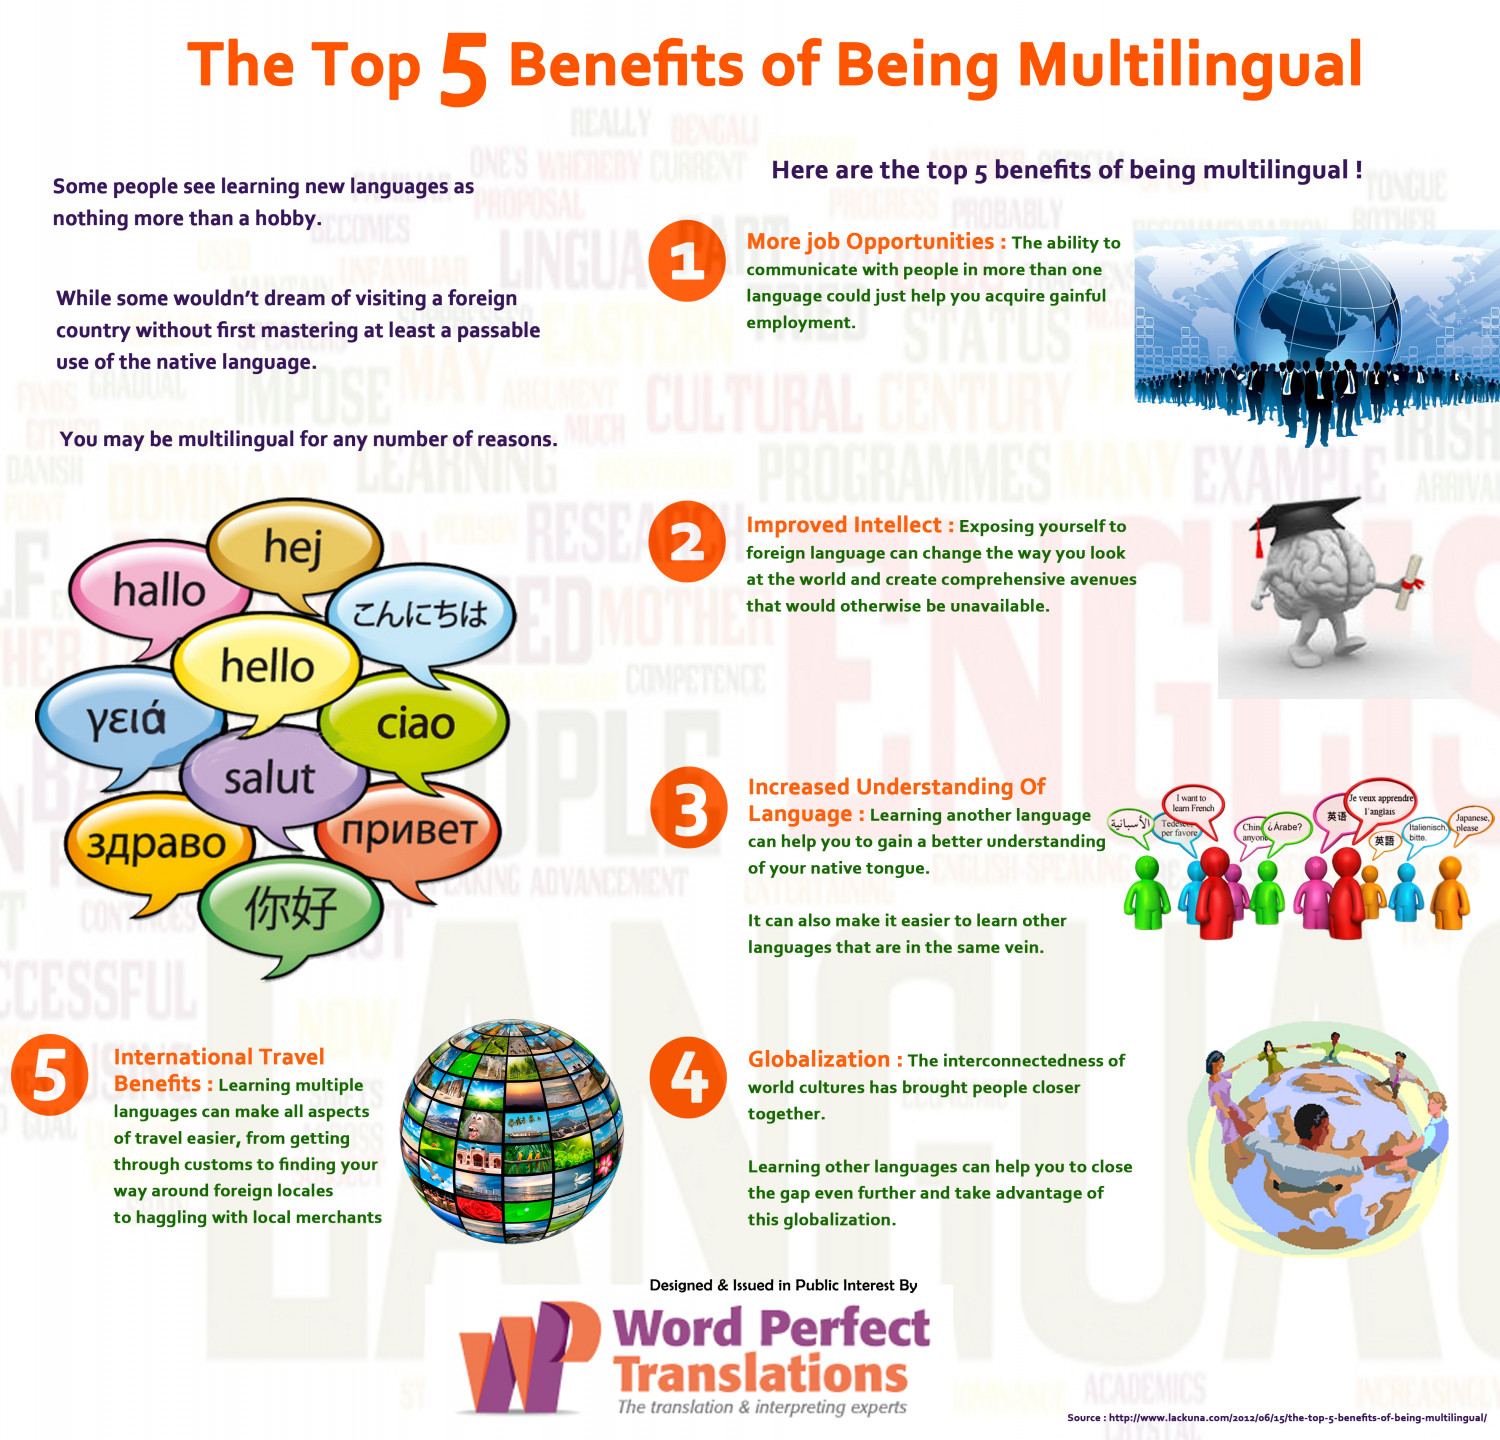 The Top 5 Benefits of Being Multilingual | Visual.ly